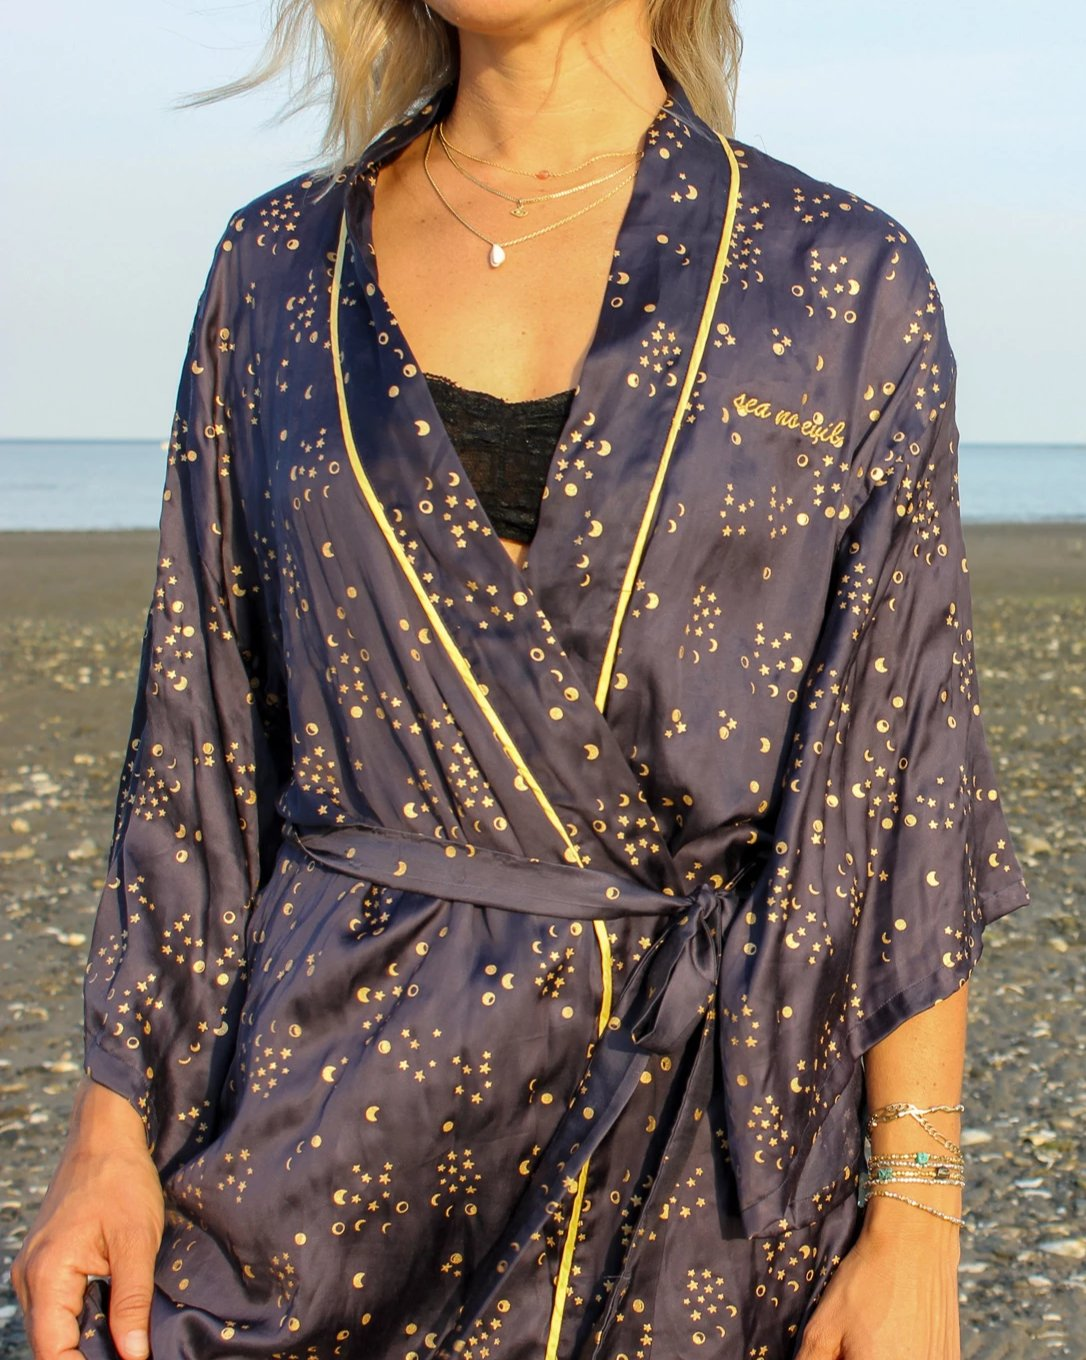 MOON PHASE KIMONO ROBE AND EYE MASK